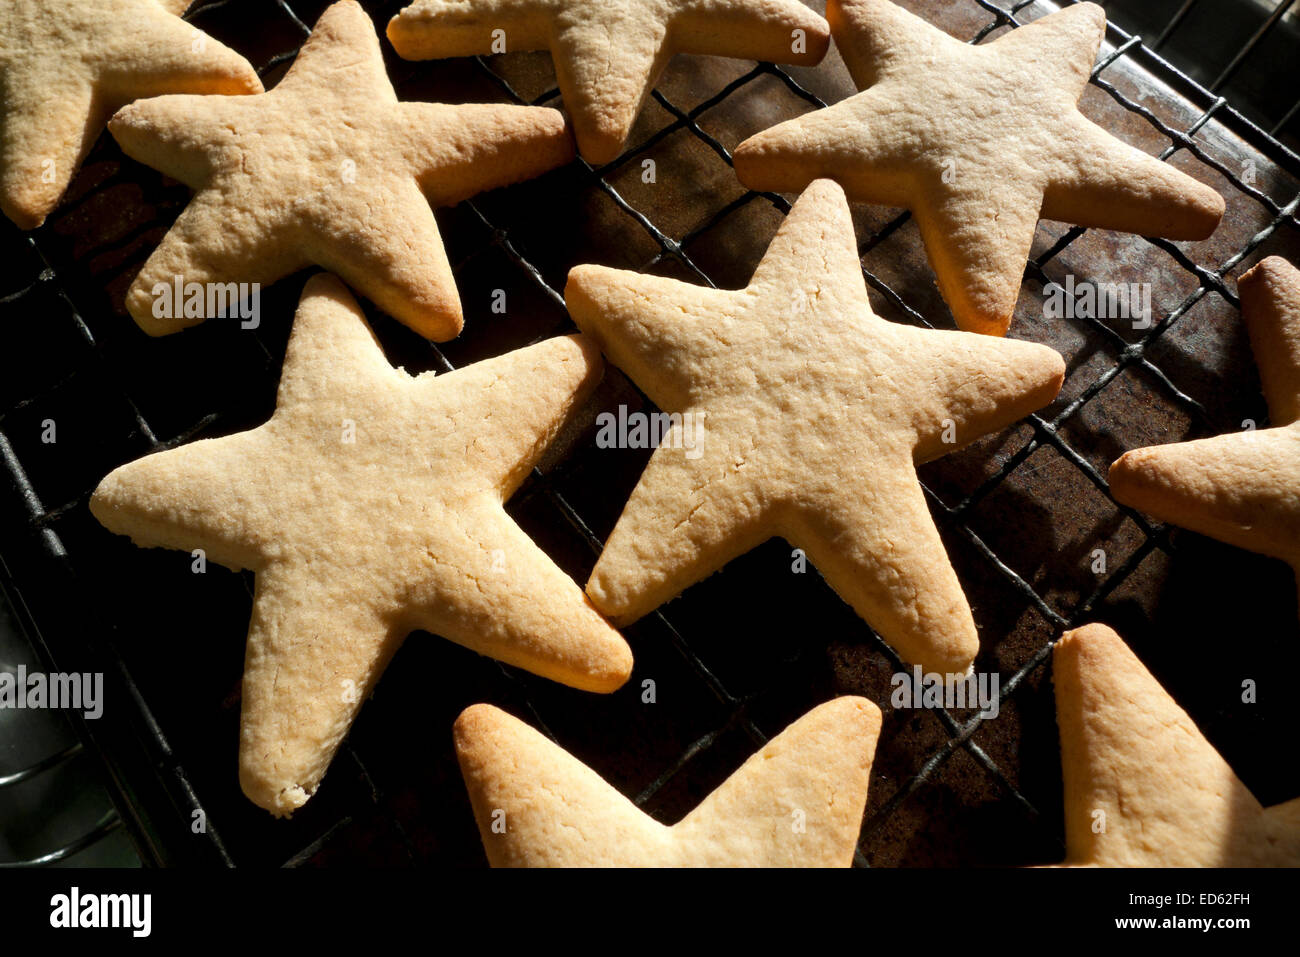 Christmas Cookies In The Shape Of Stars Just Out Of The Oven Wales